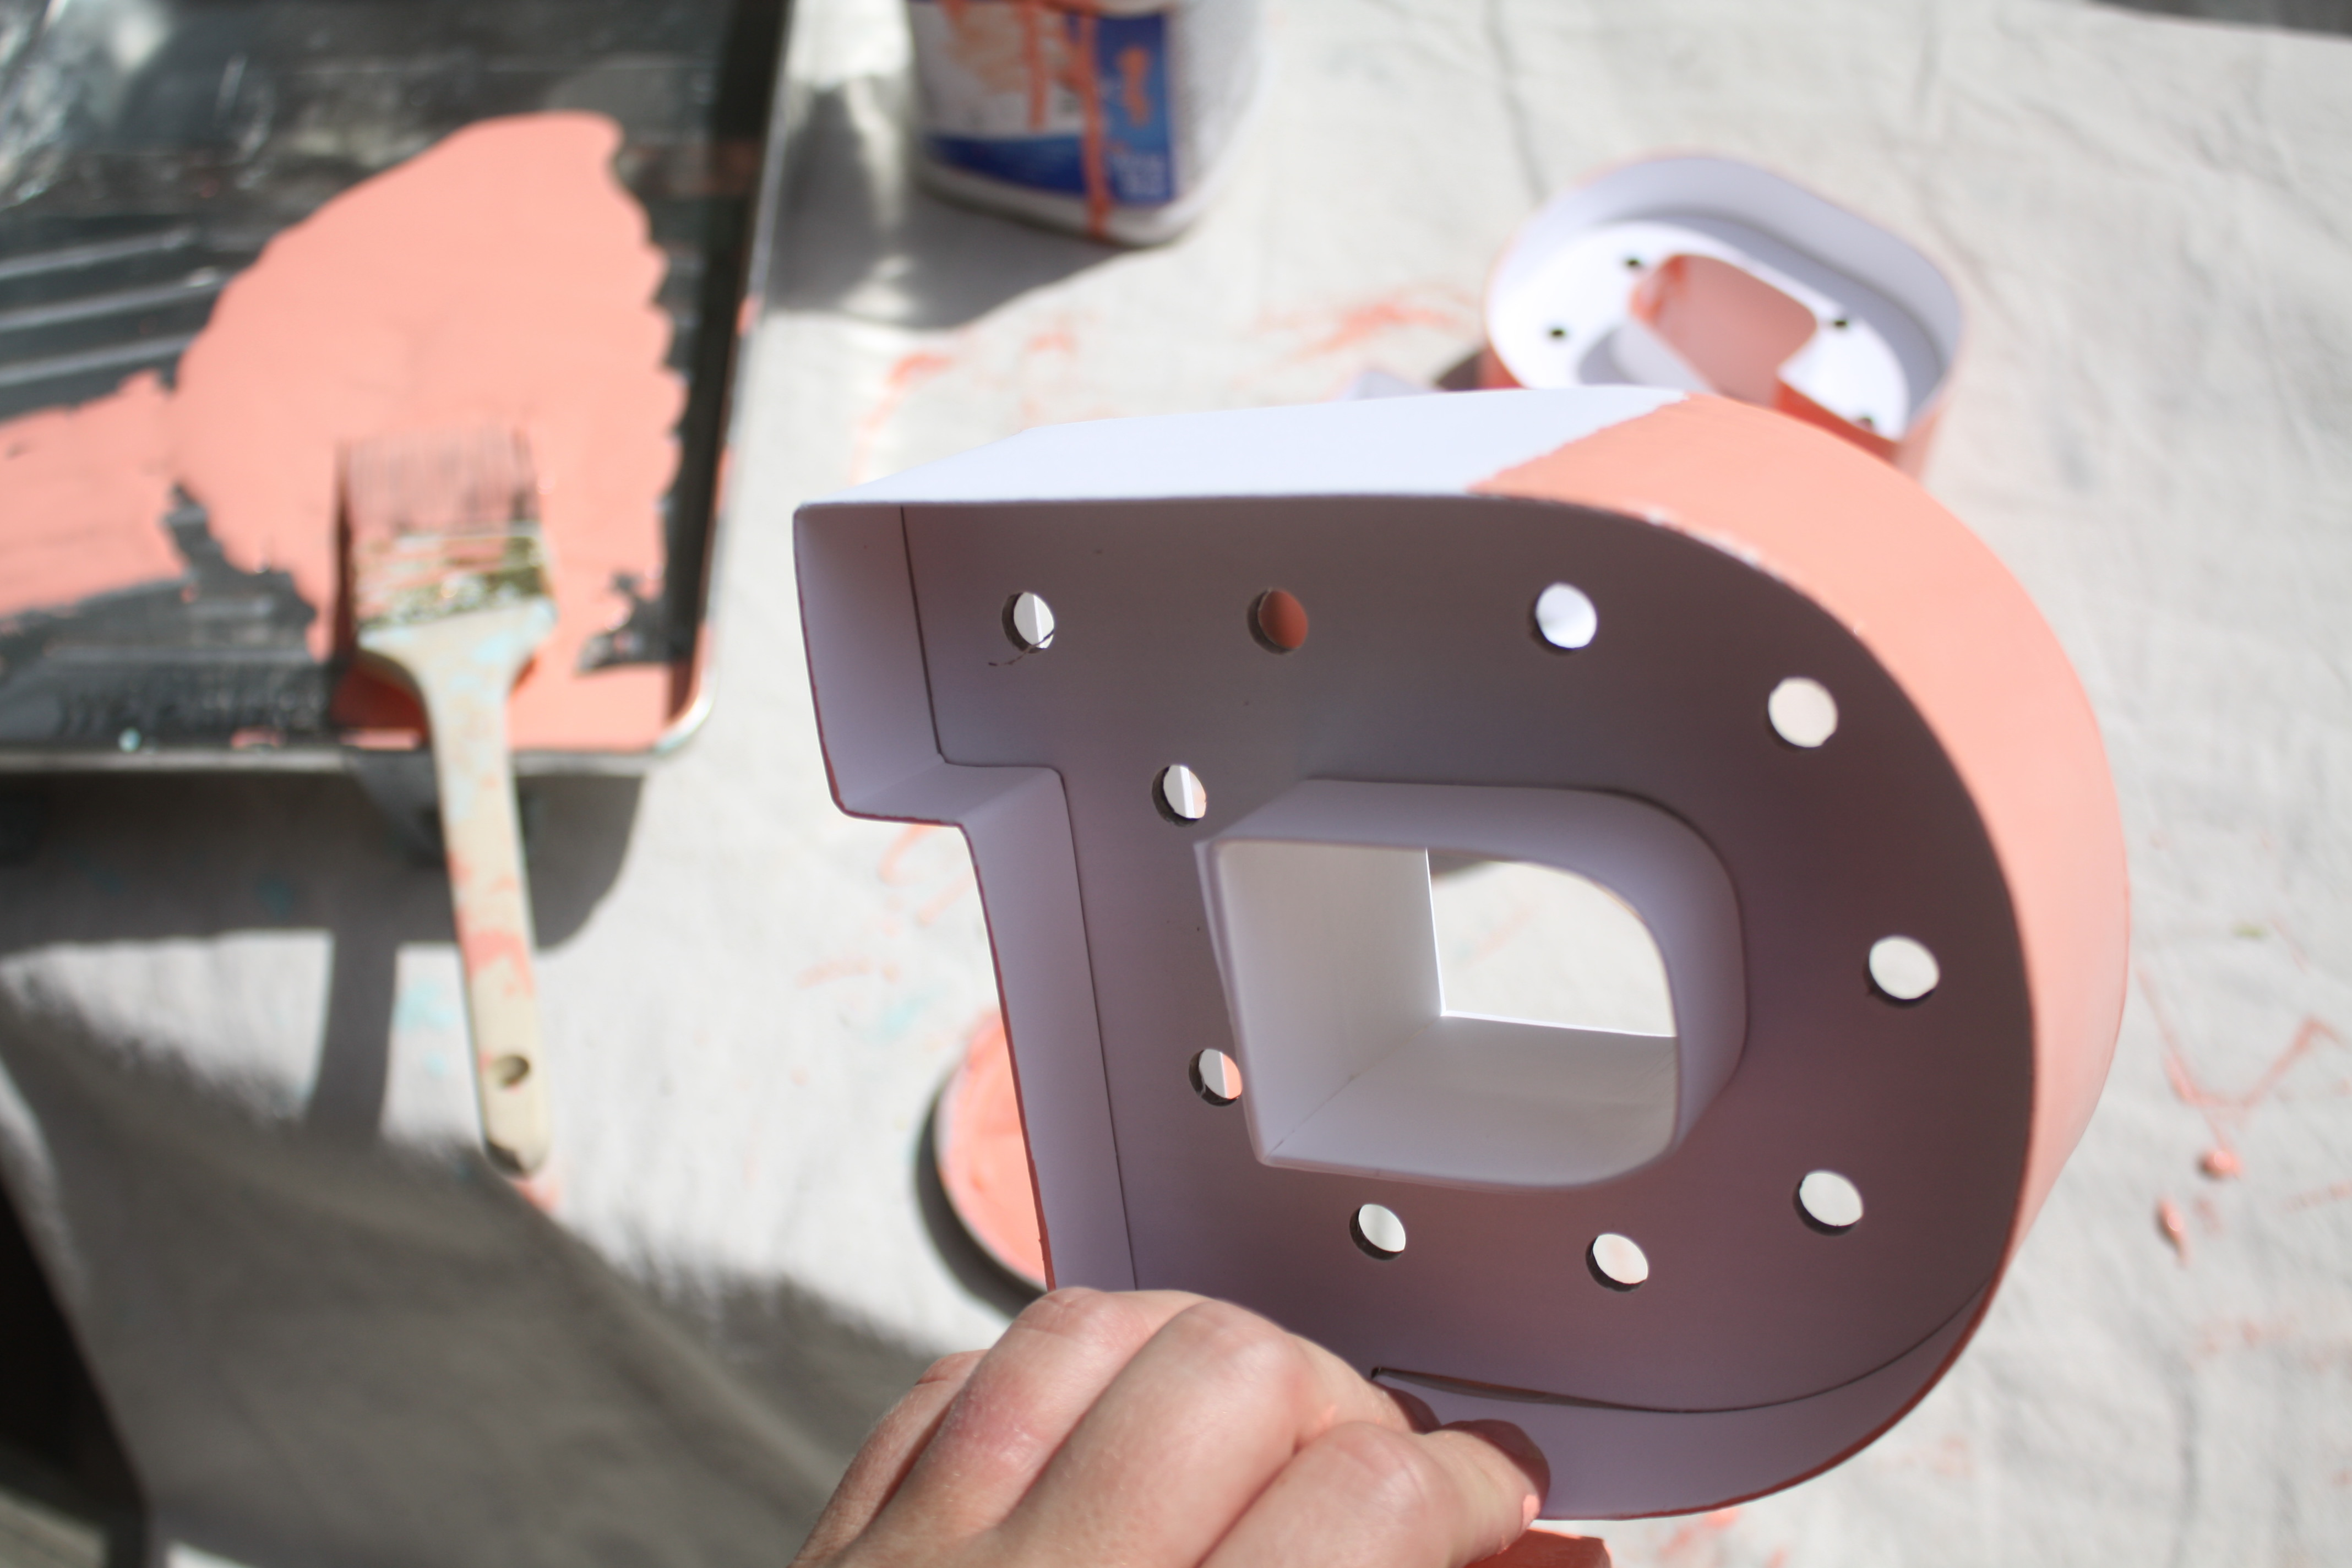 Glam Office Makeover: DIY Marque Letters || Sarah Sofia Productions